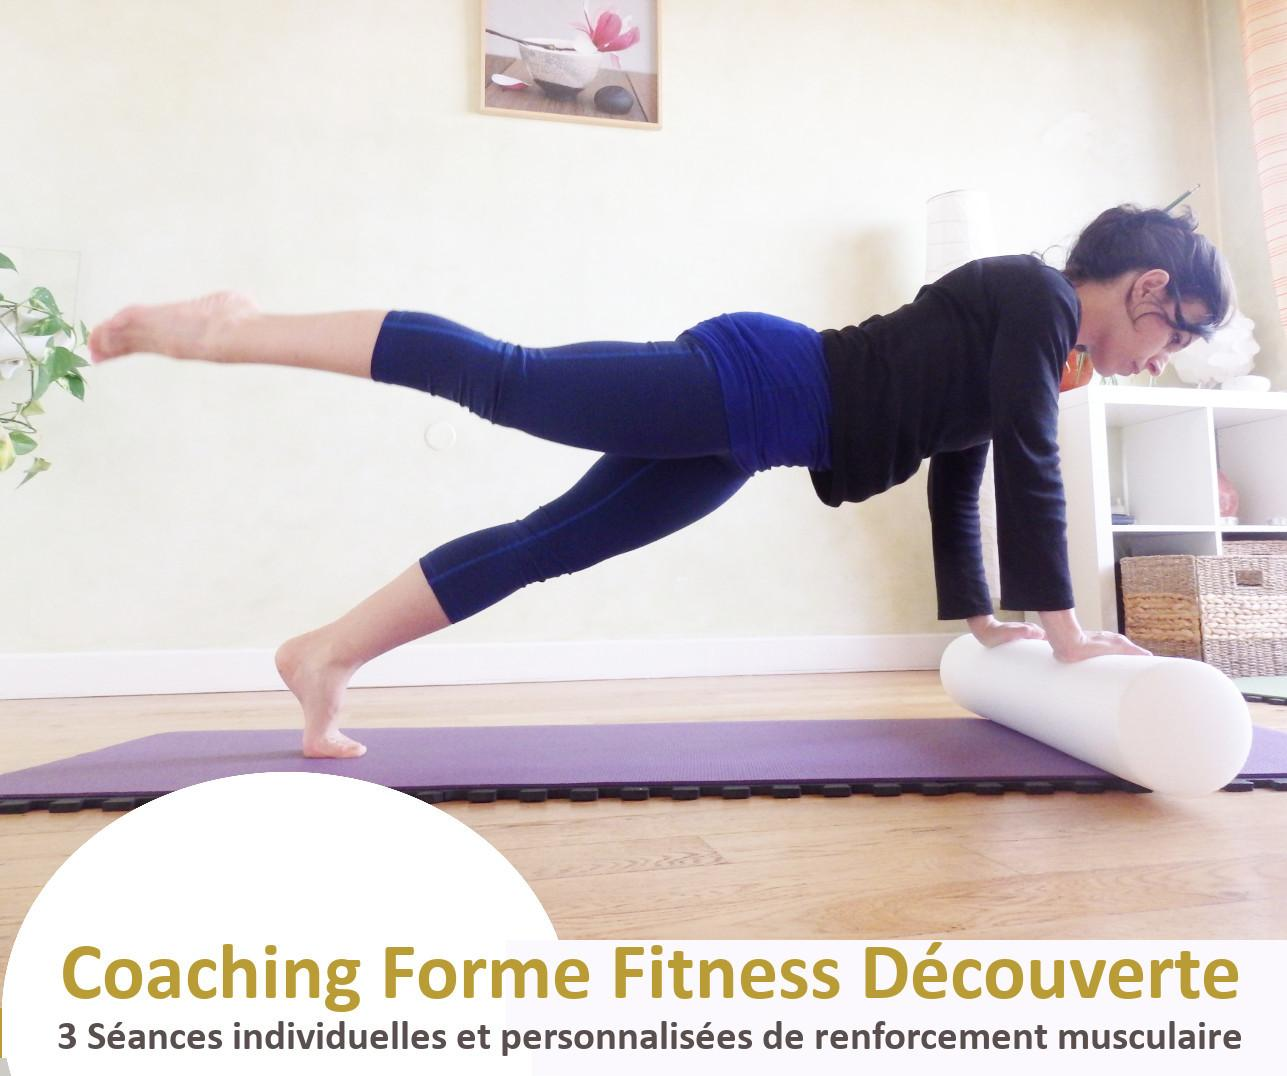 coaching forme fitness decouverte mars 2020